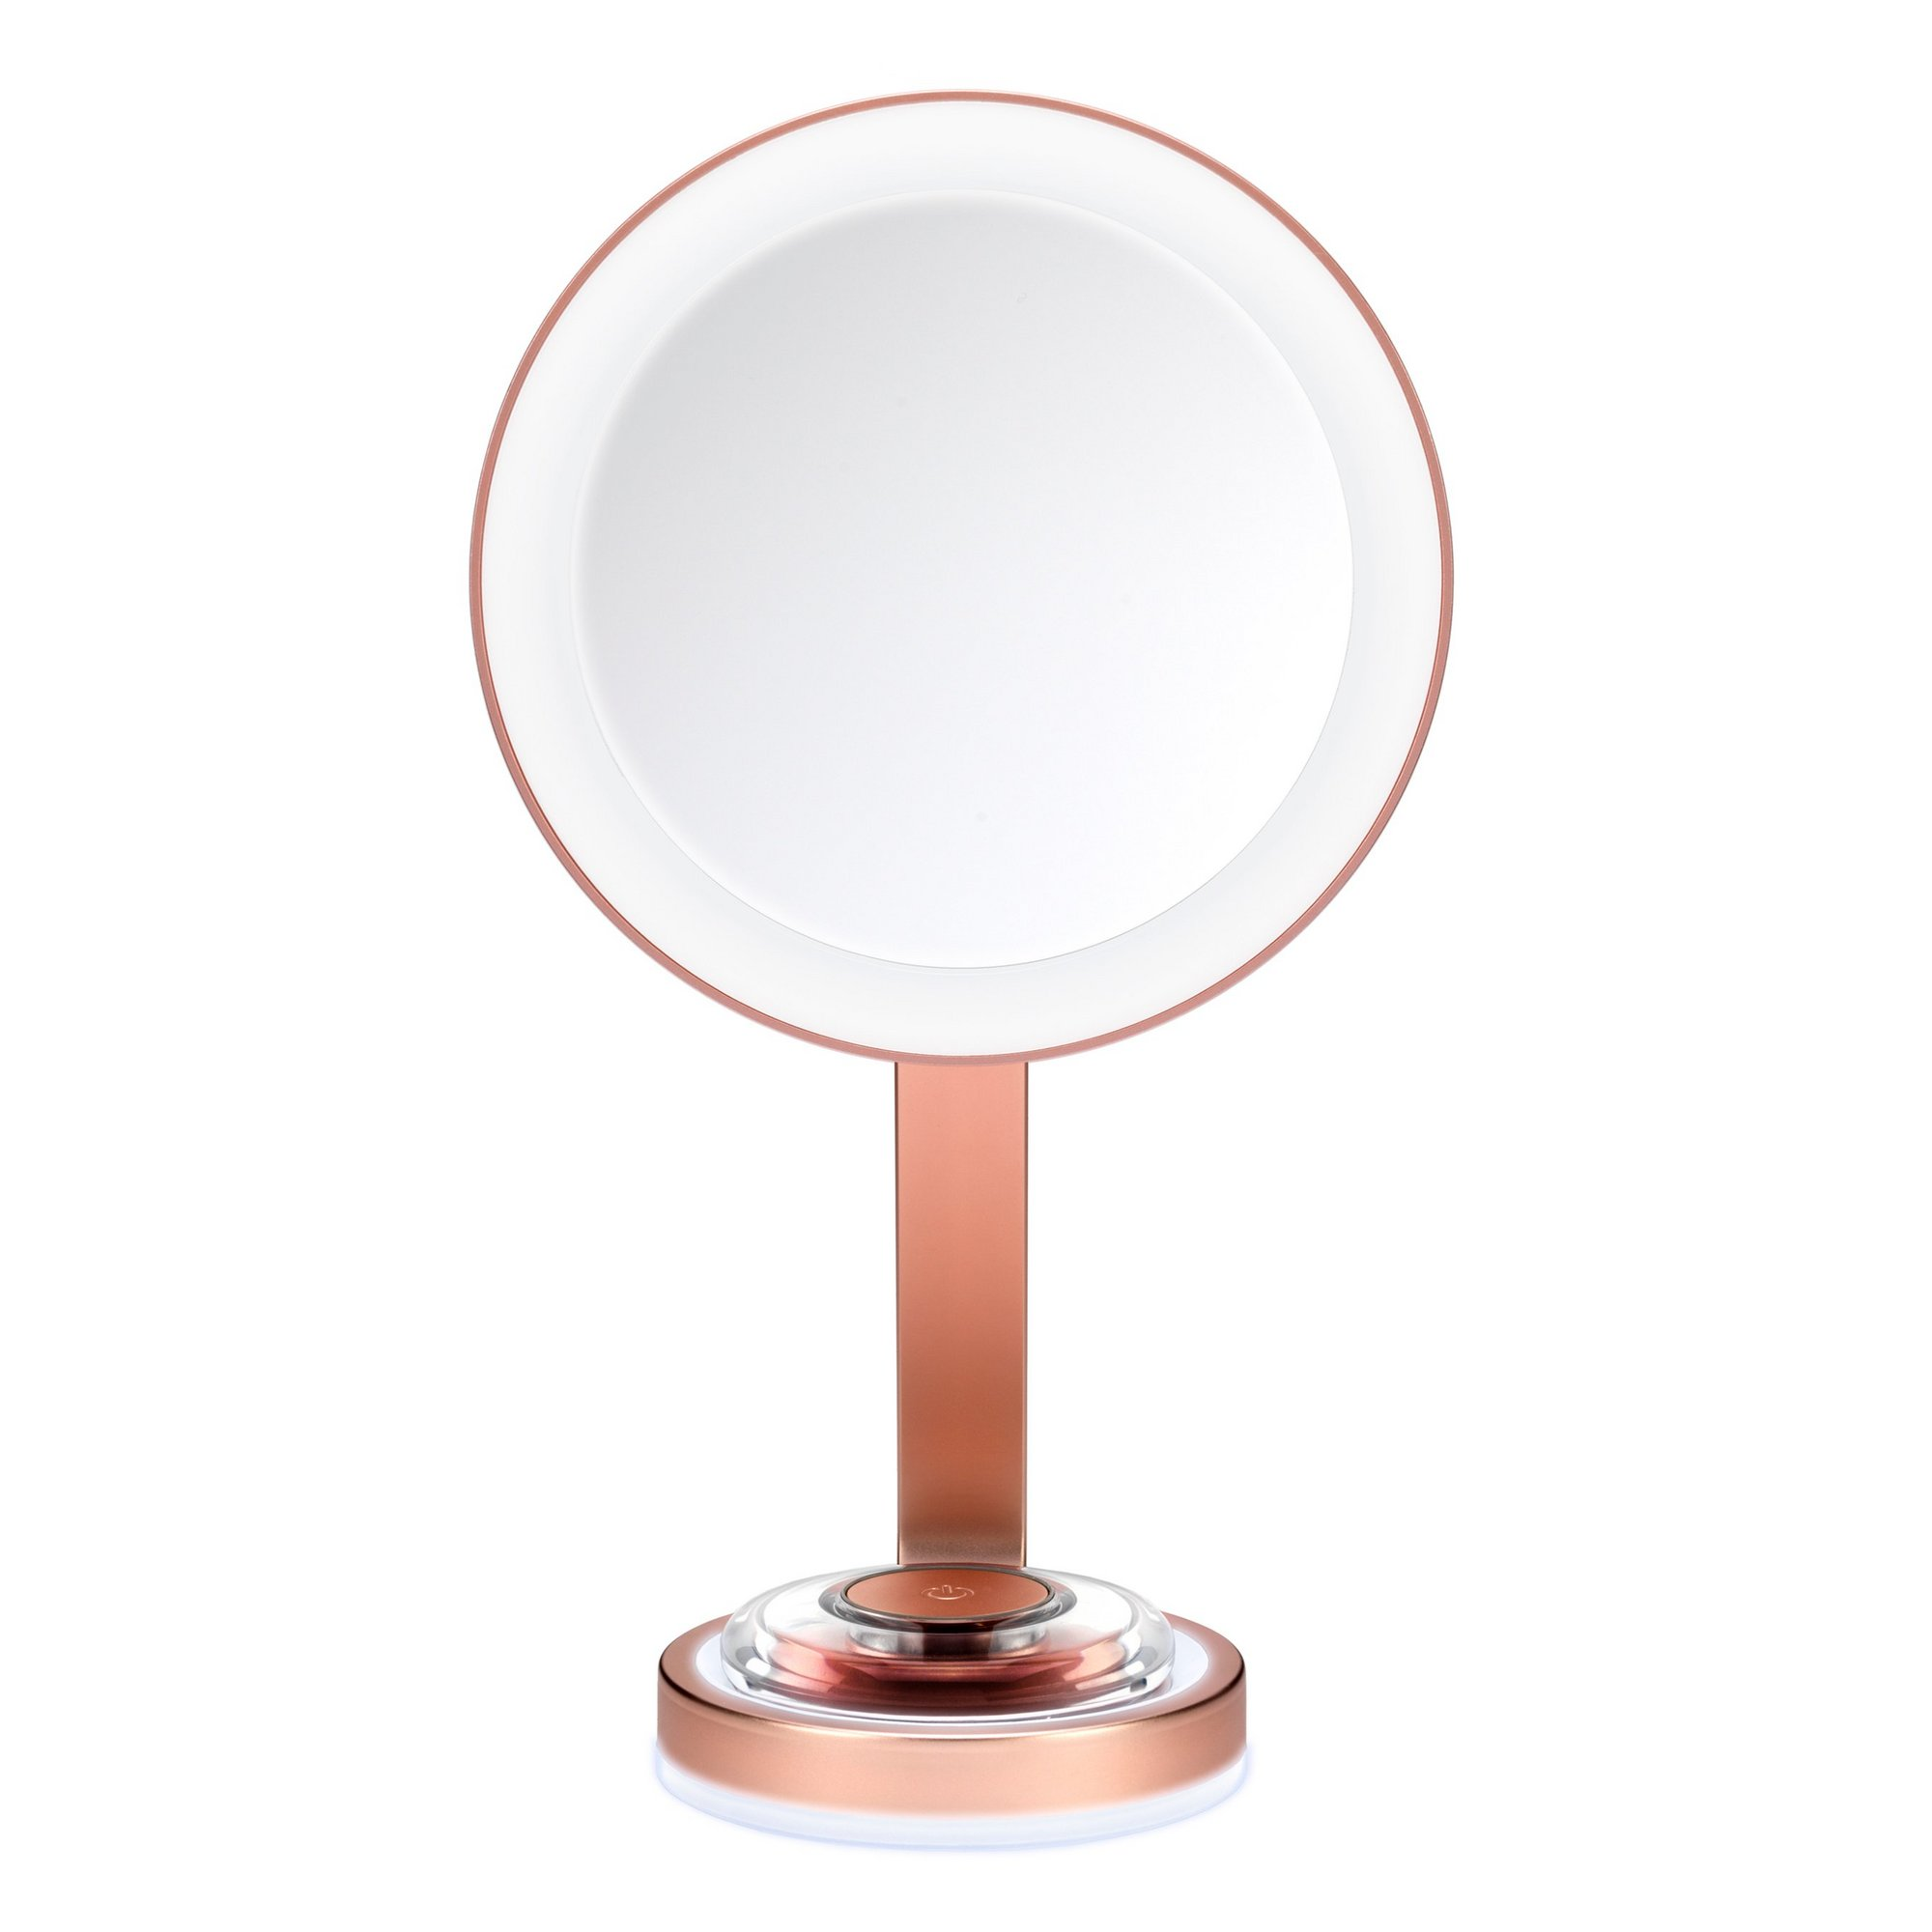 Image of BaByliss Reflections Rose Gold Mirror